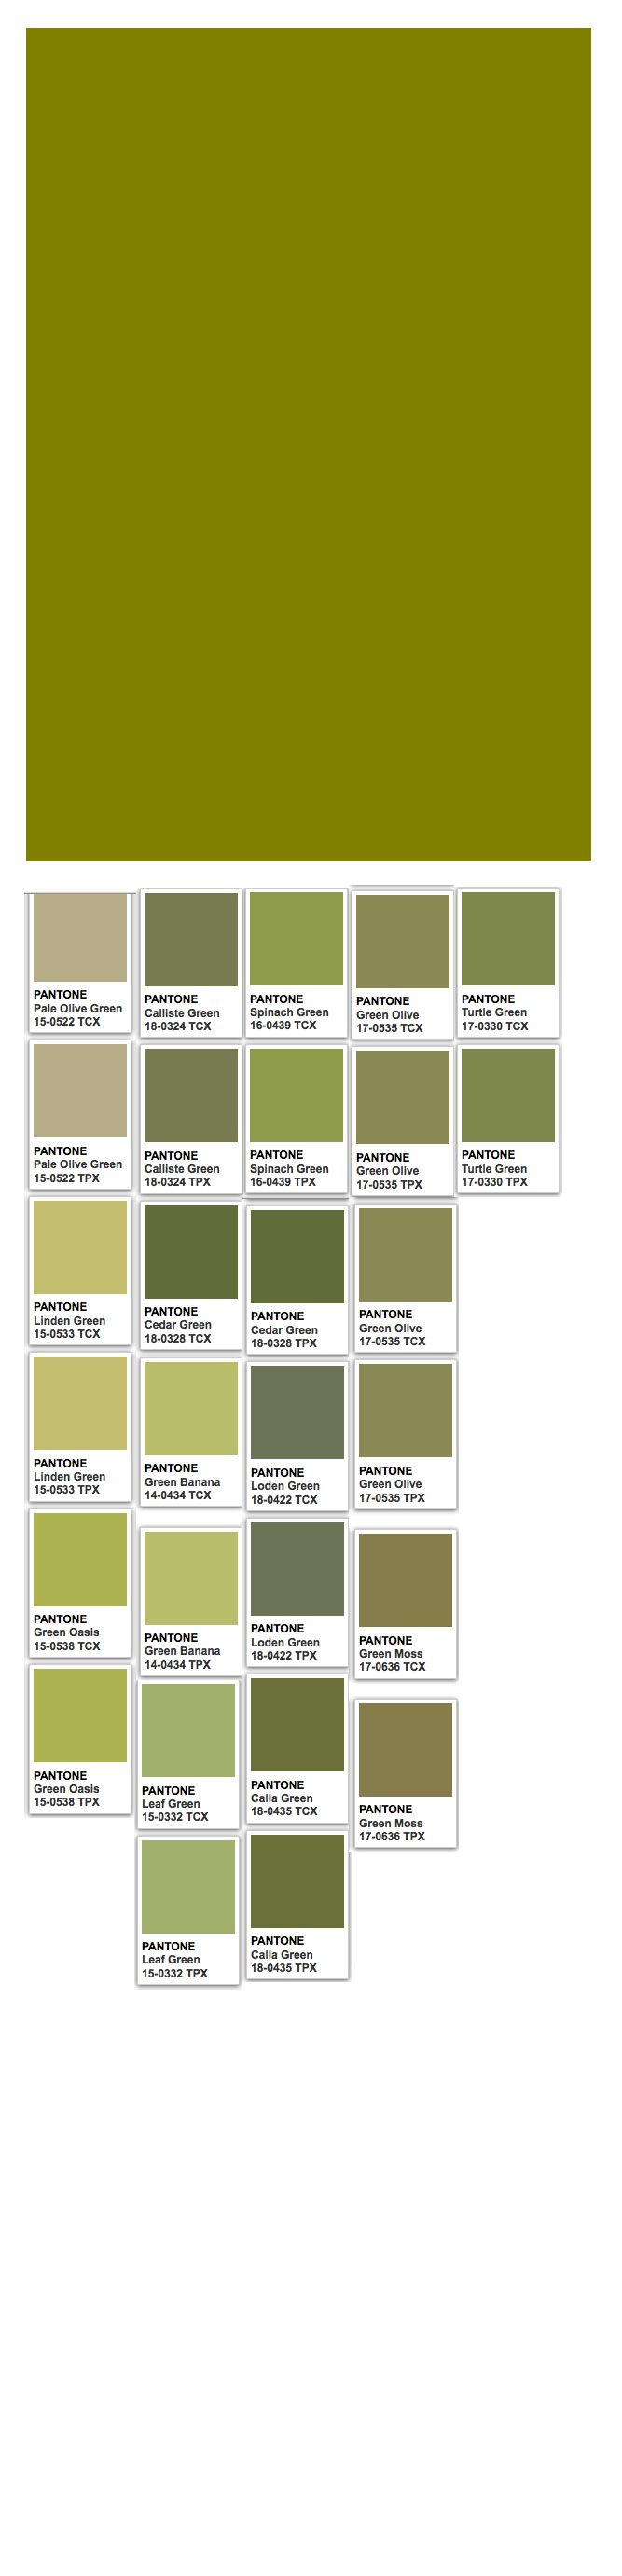 Olive Web And Pantone Colors Color Thesaurus Color Wheels And